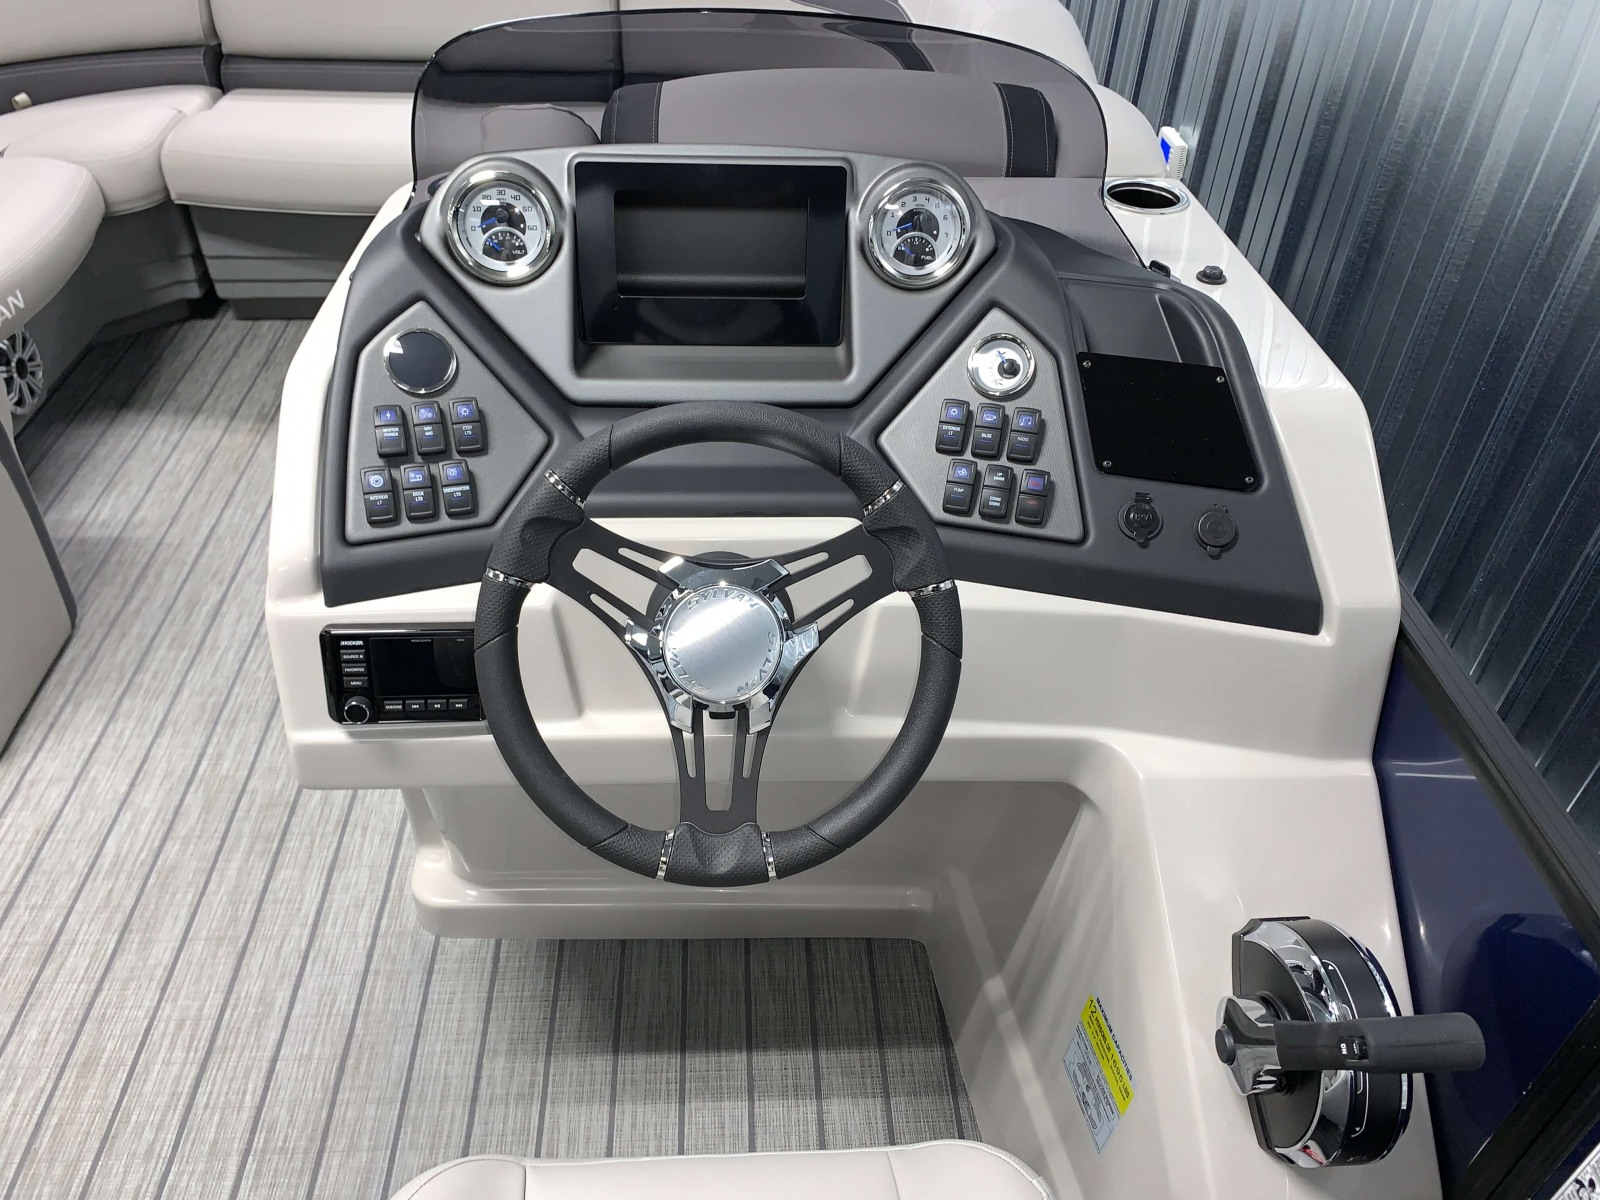 Drivers Console of the 2021 Sylvan L3 LZ Tritoon Boat